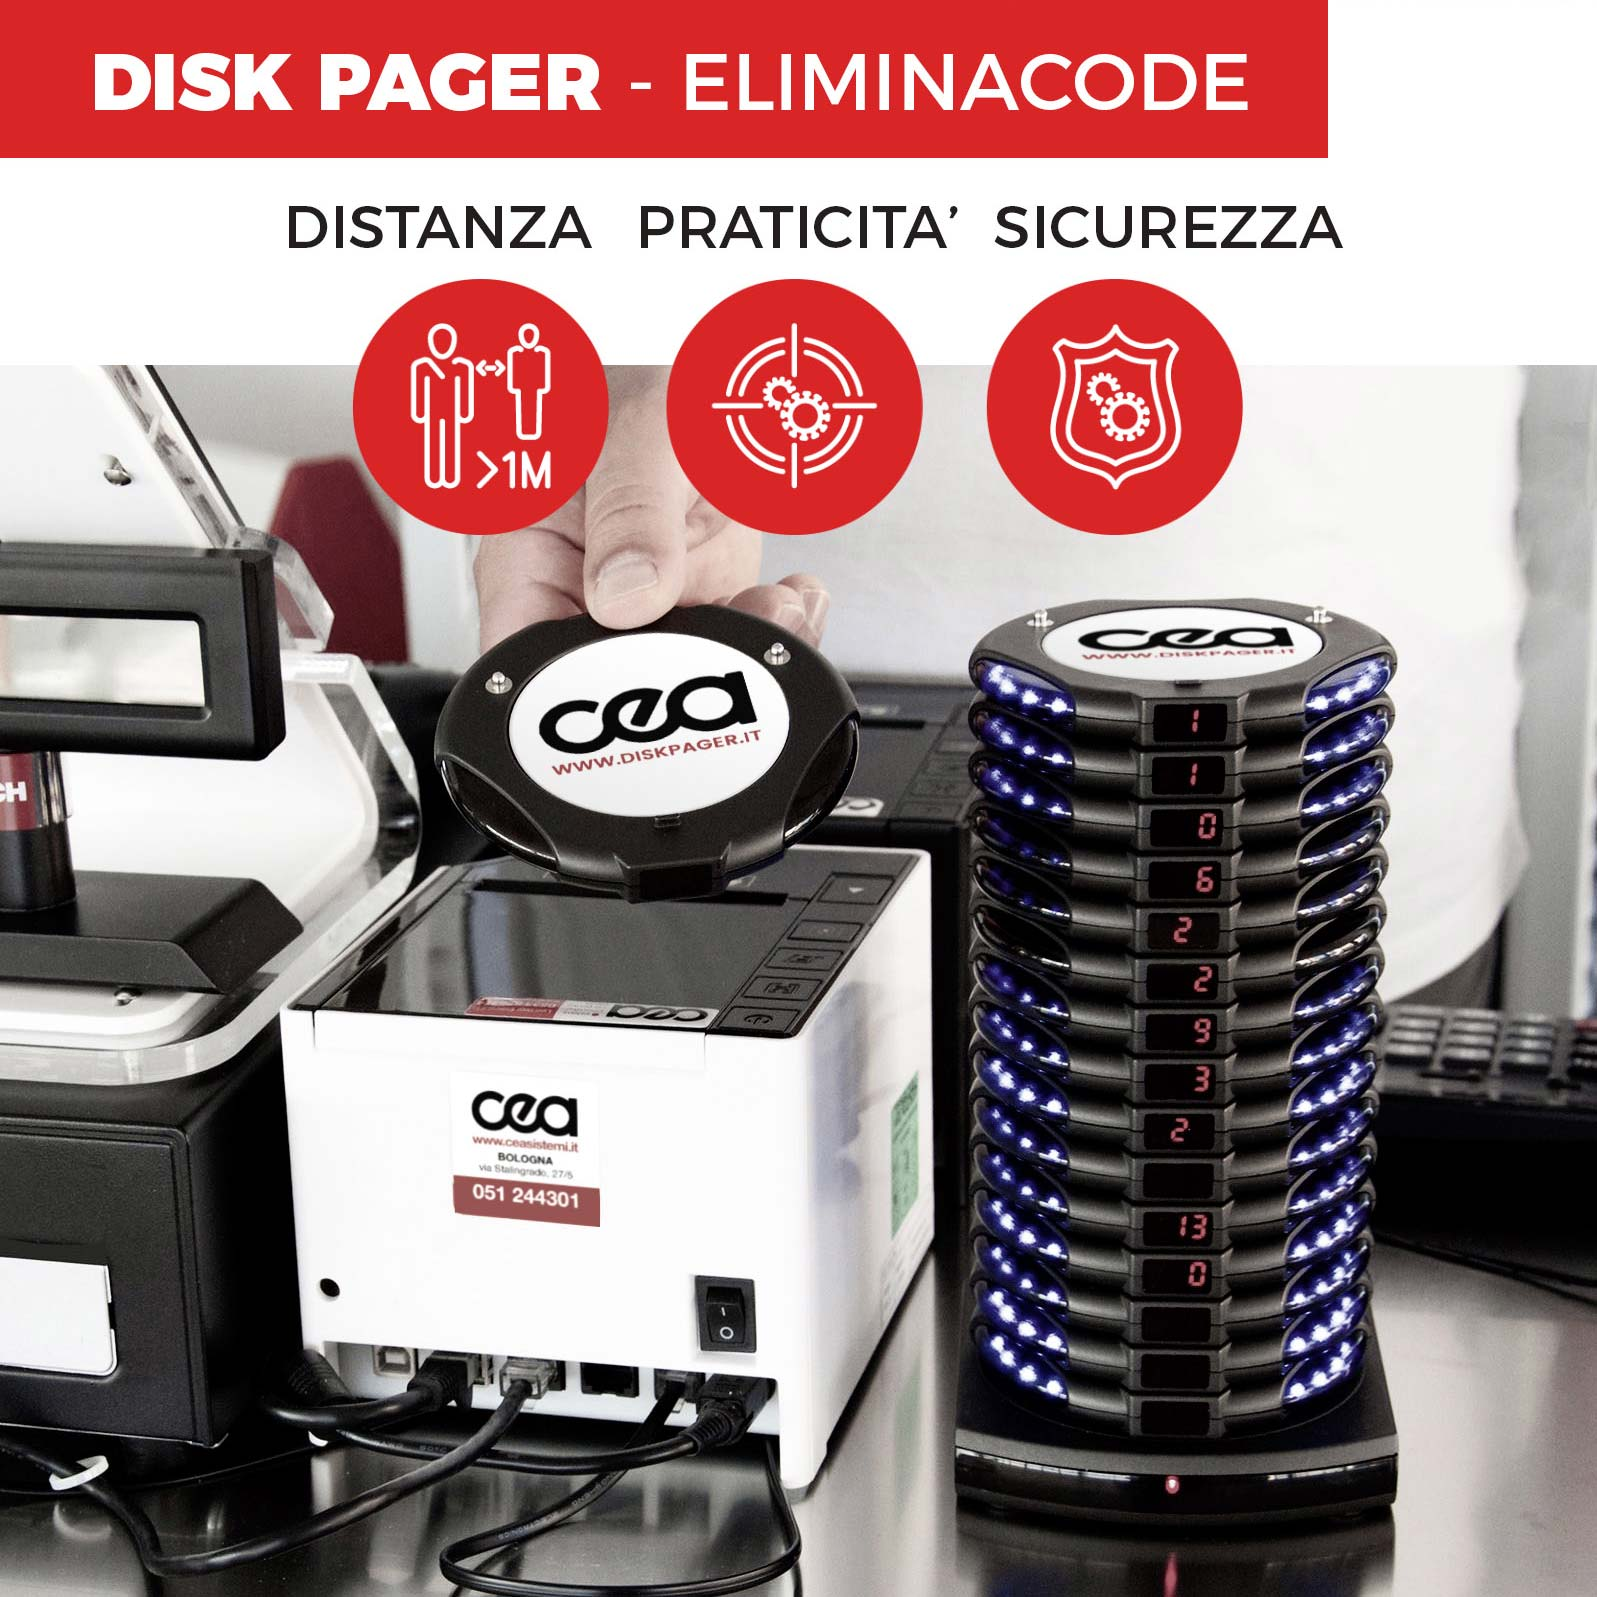 disk pager